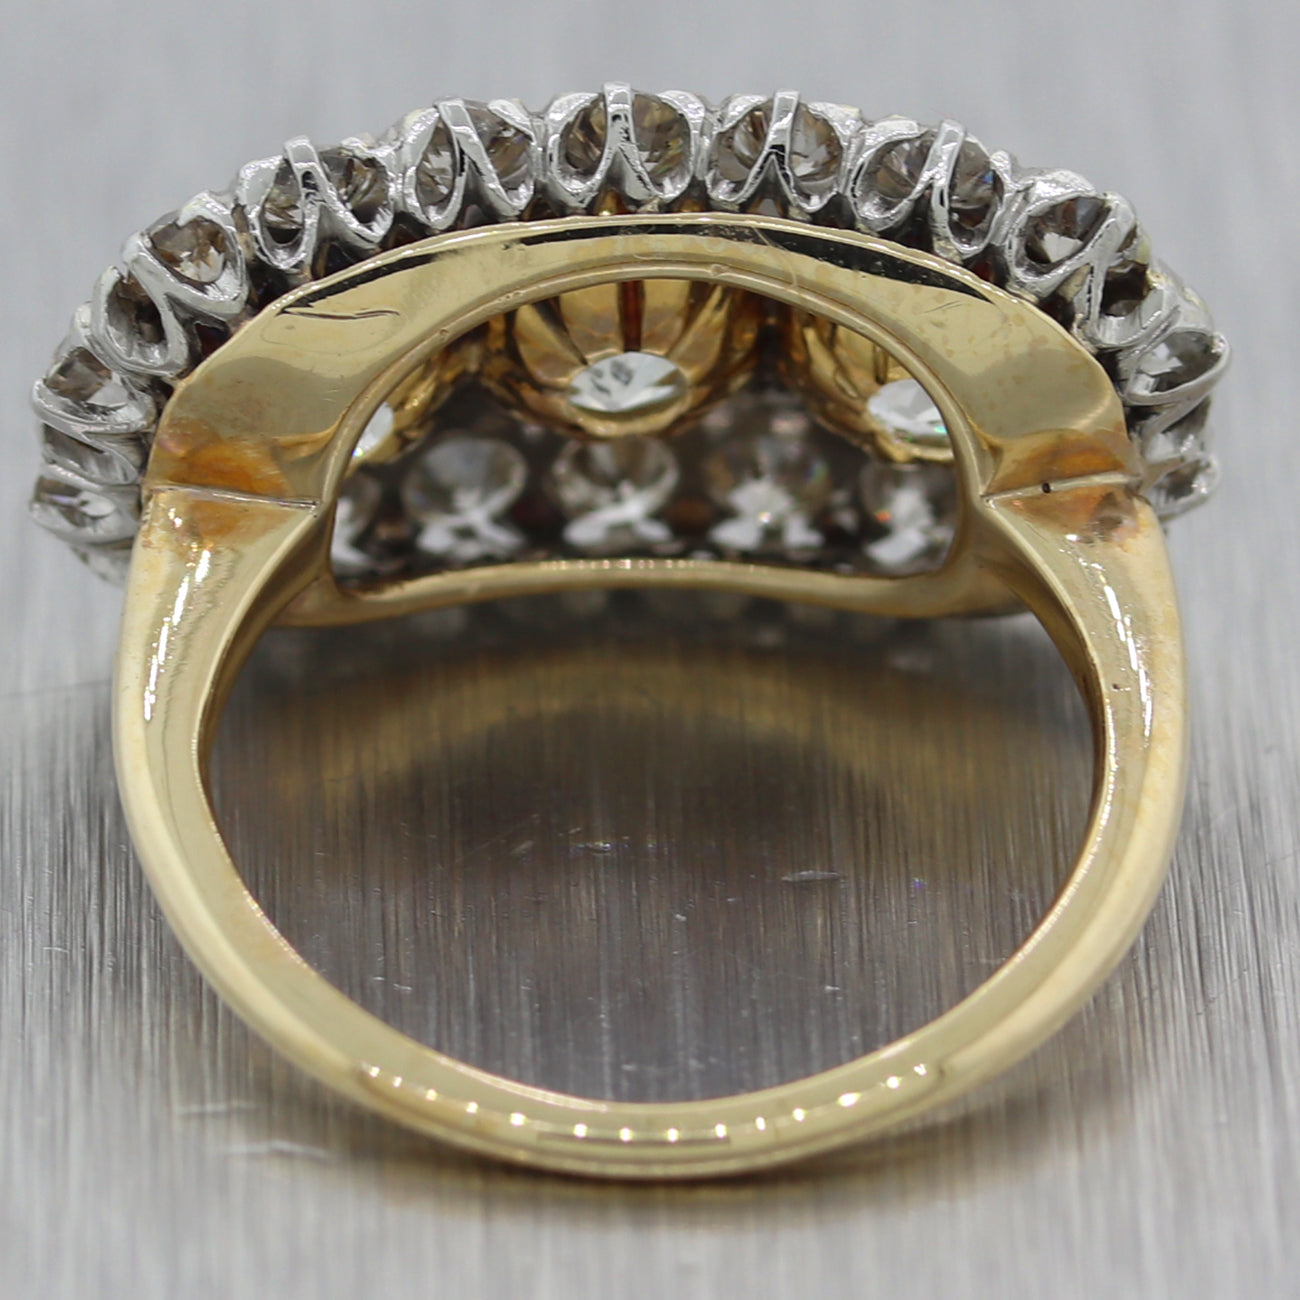 1930's Antique Art Deco 14k Yellow Gold 4.21ctw Diamond Cluster Ring EGL